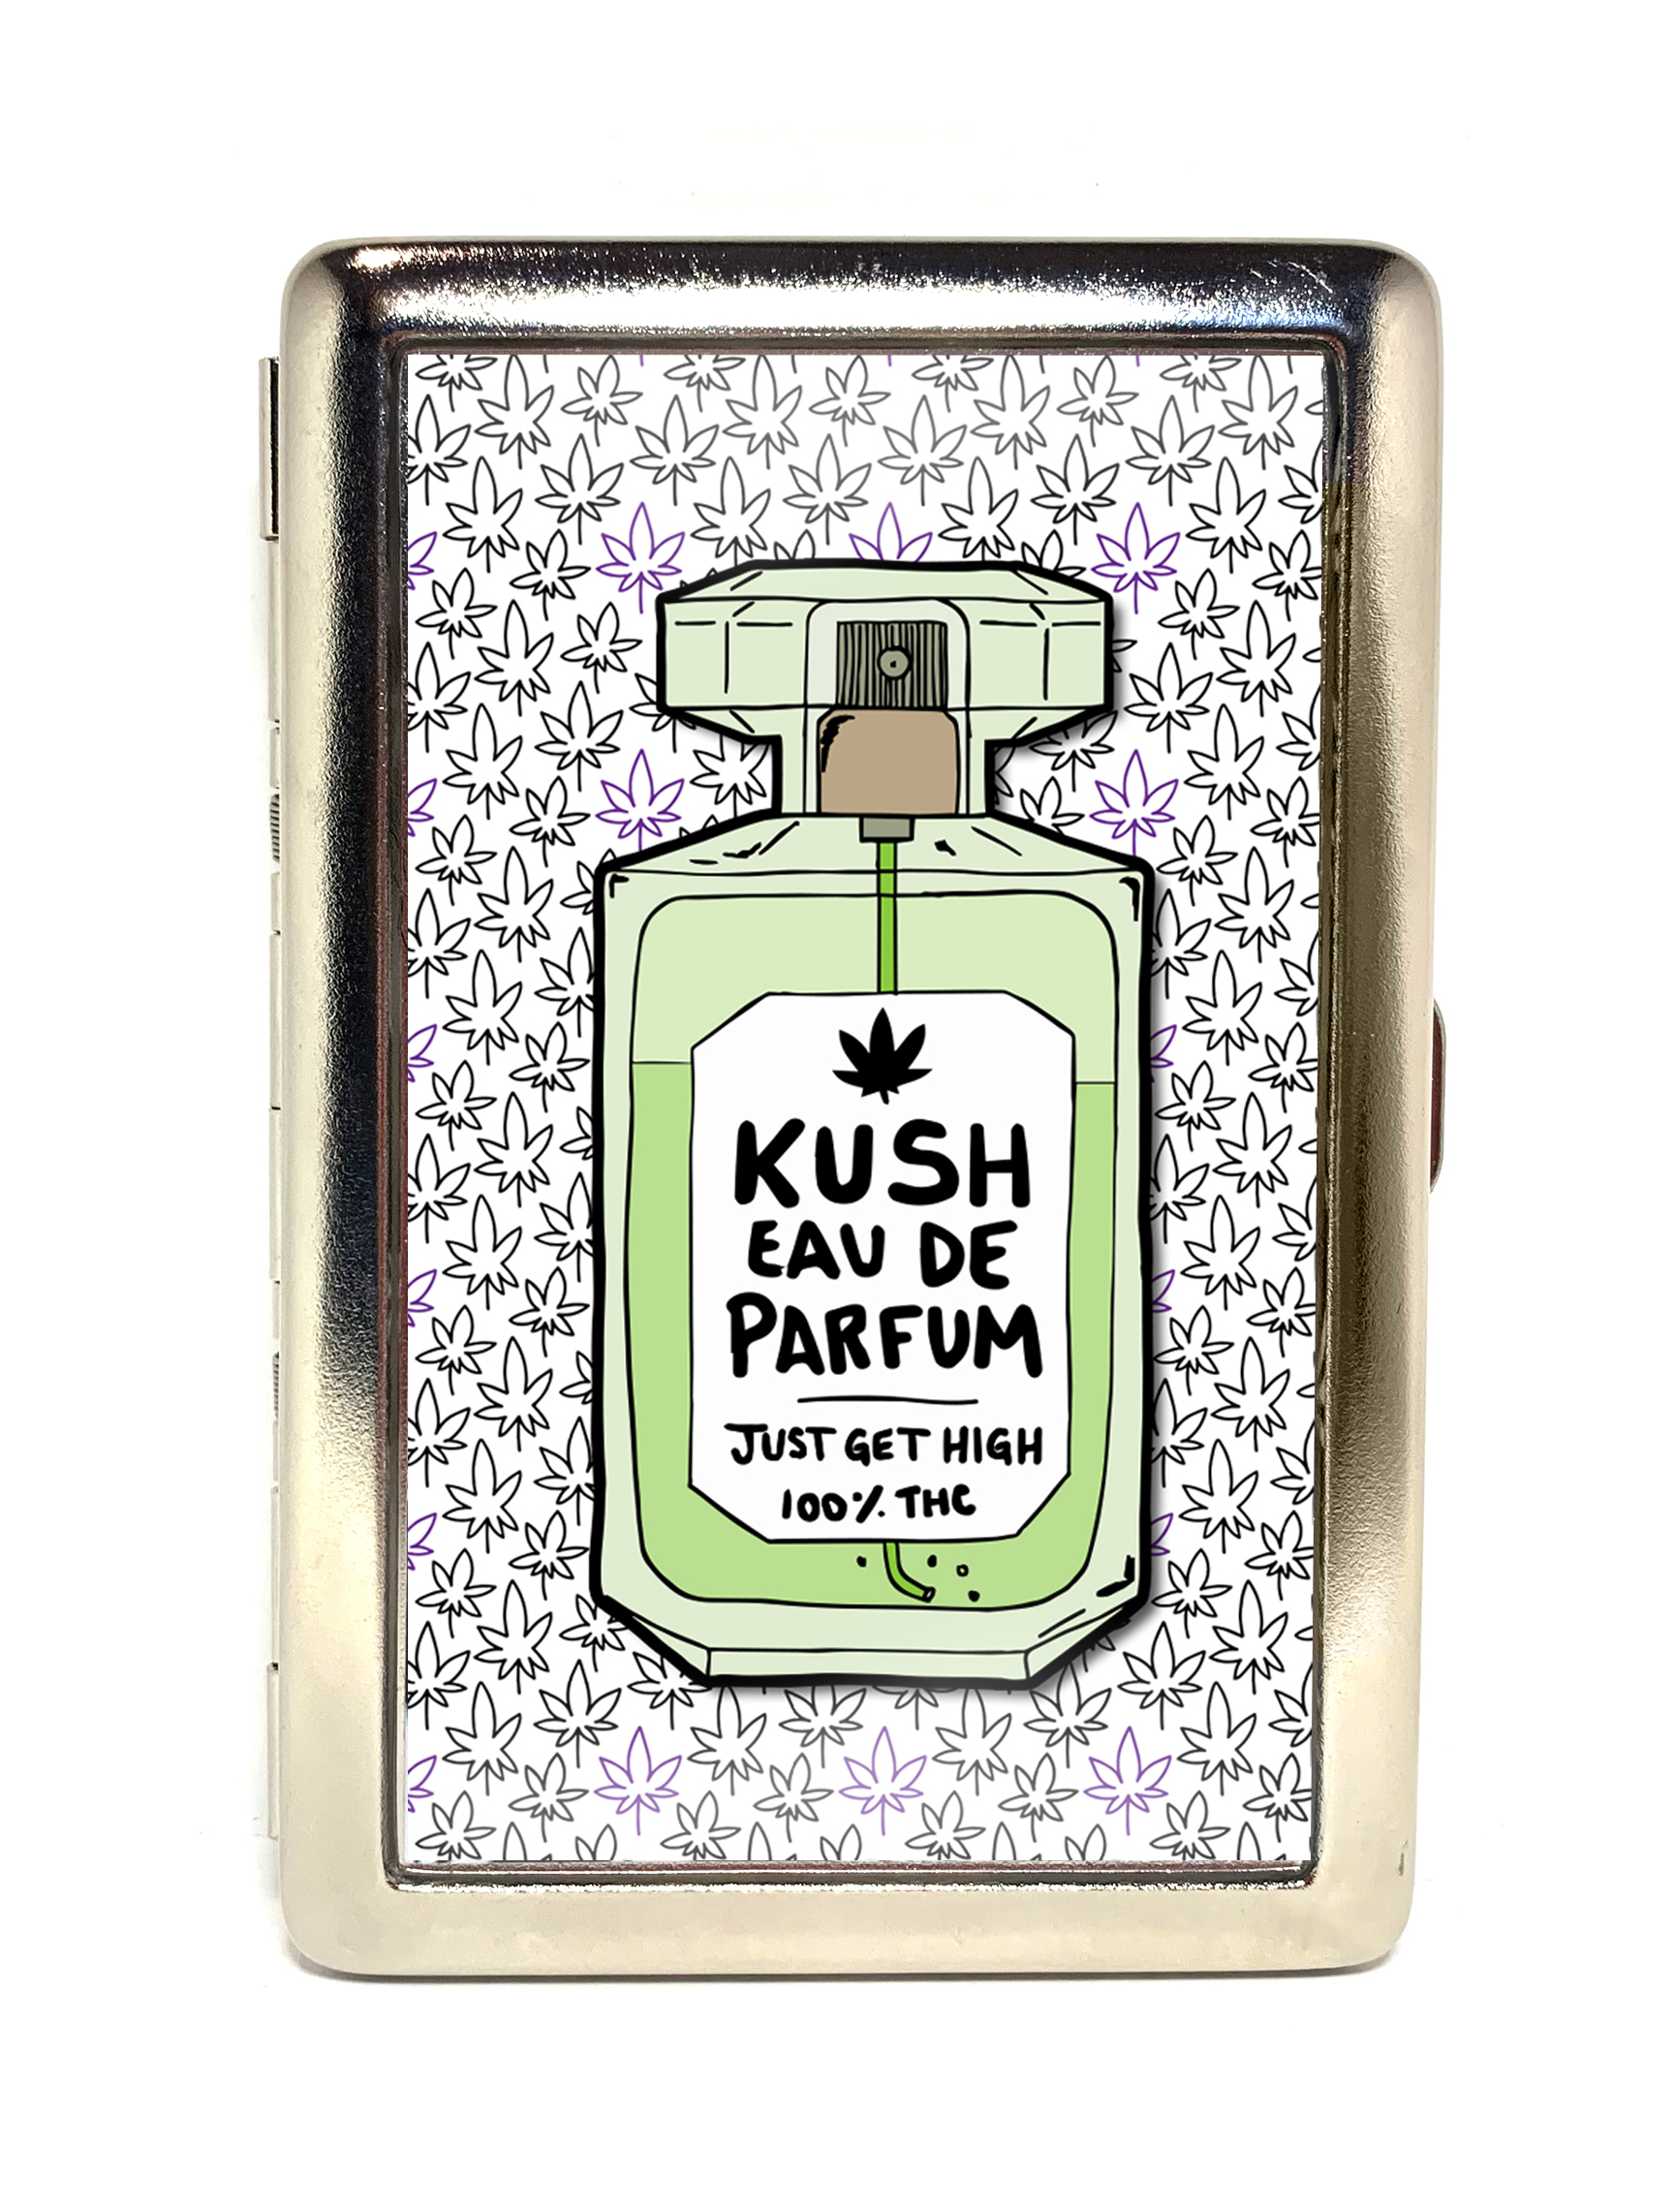 joint case_just get high_parfume_web